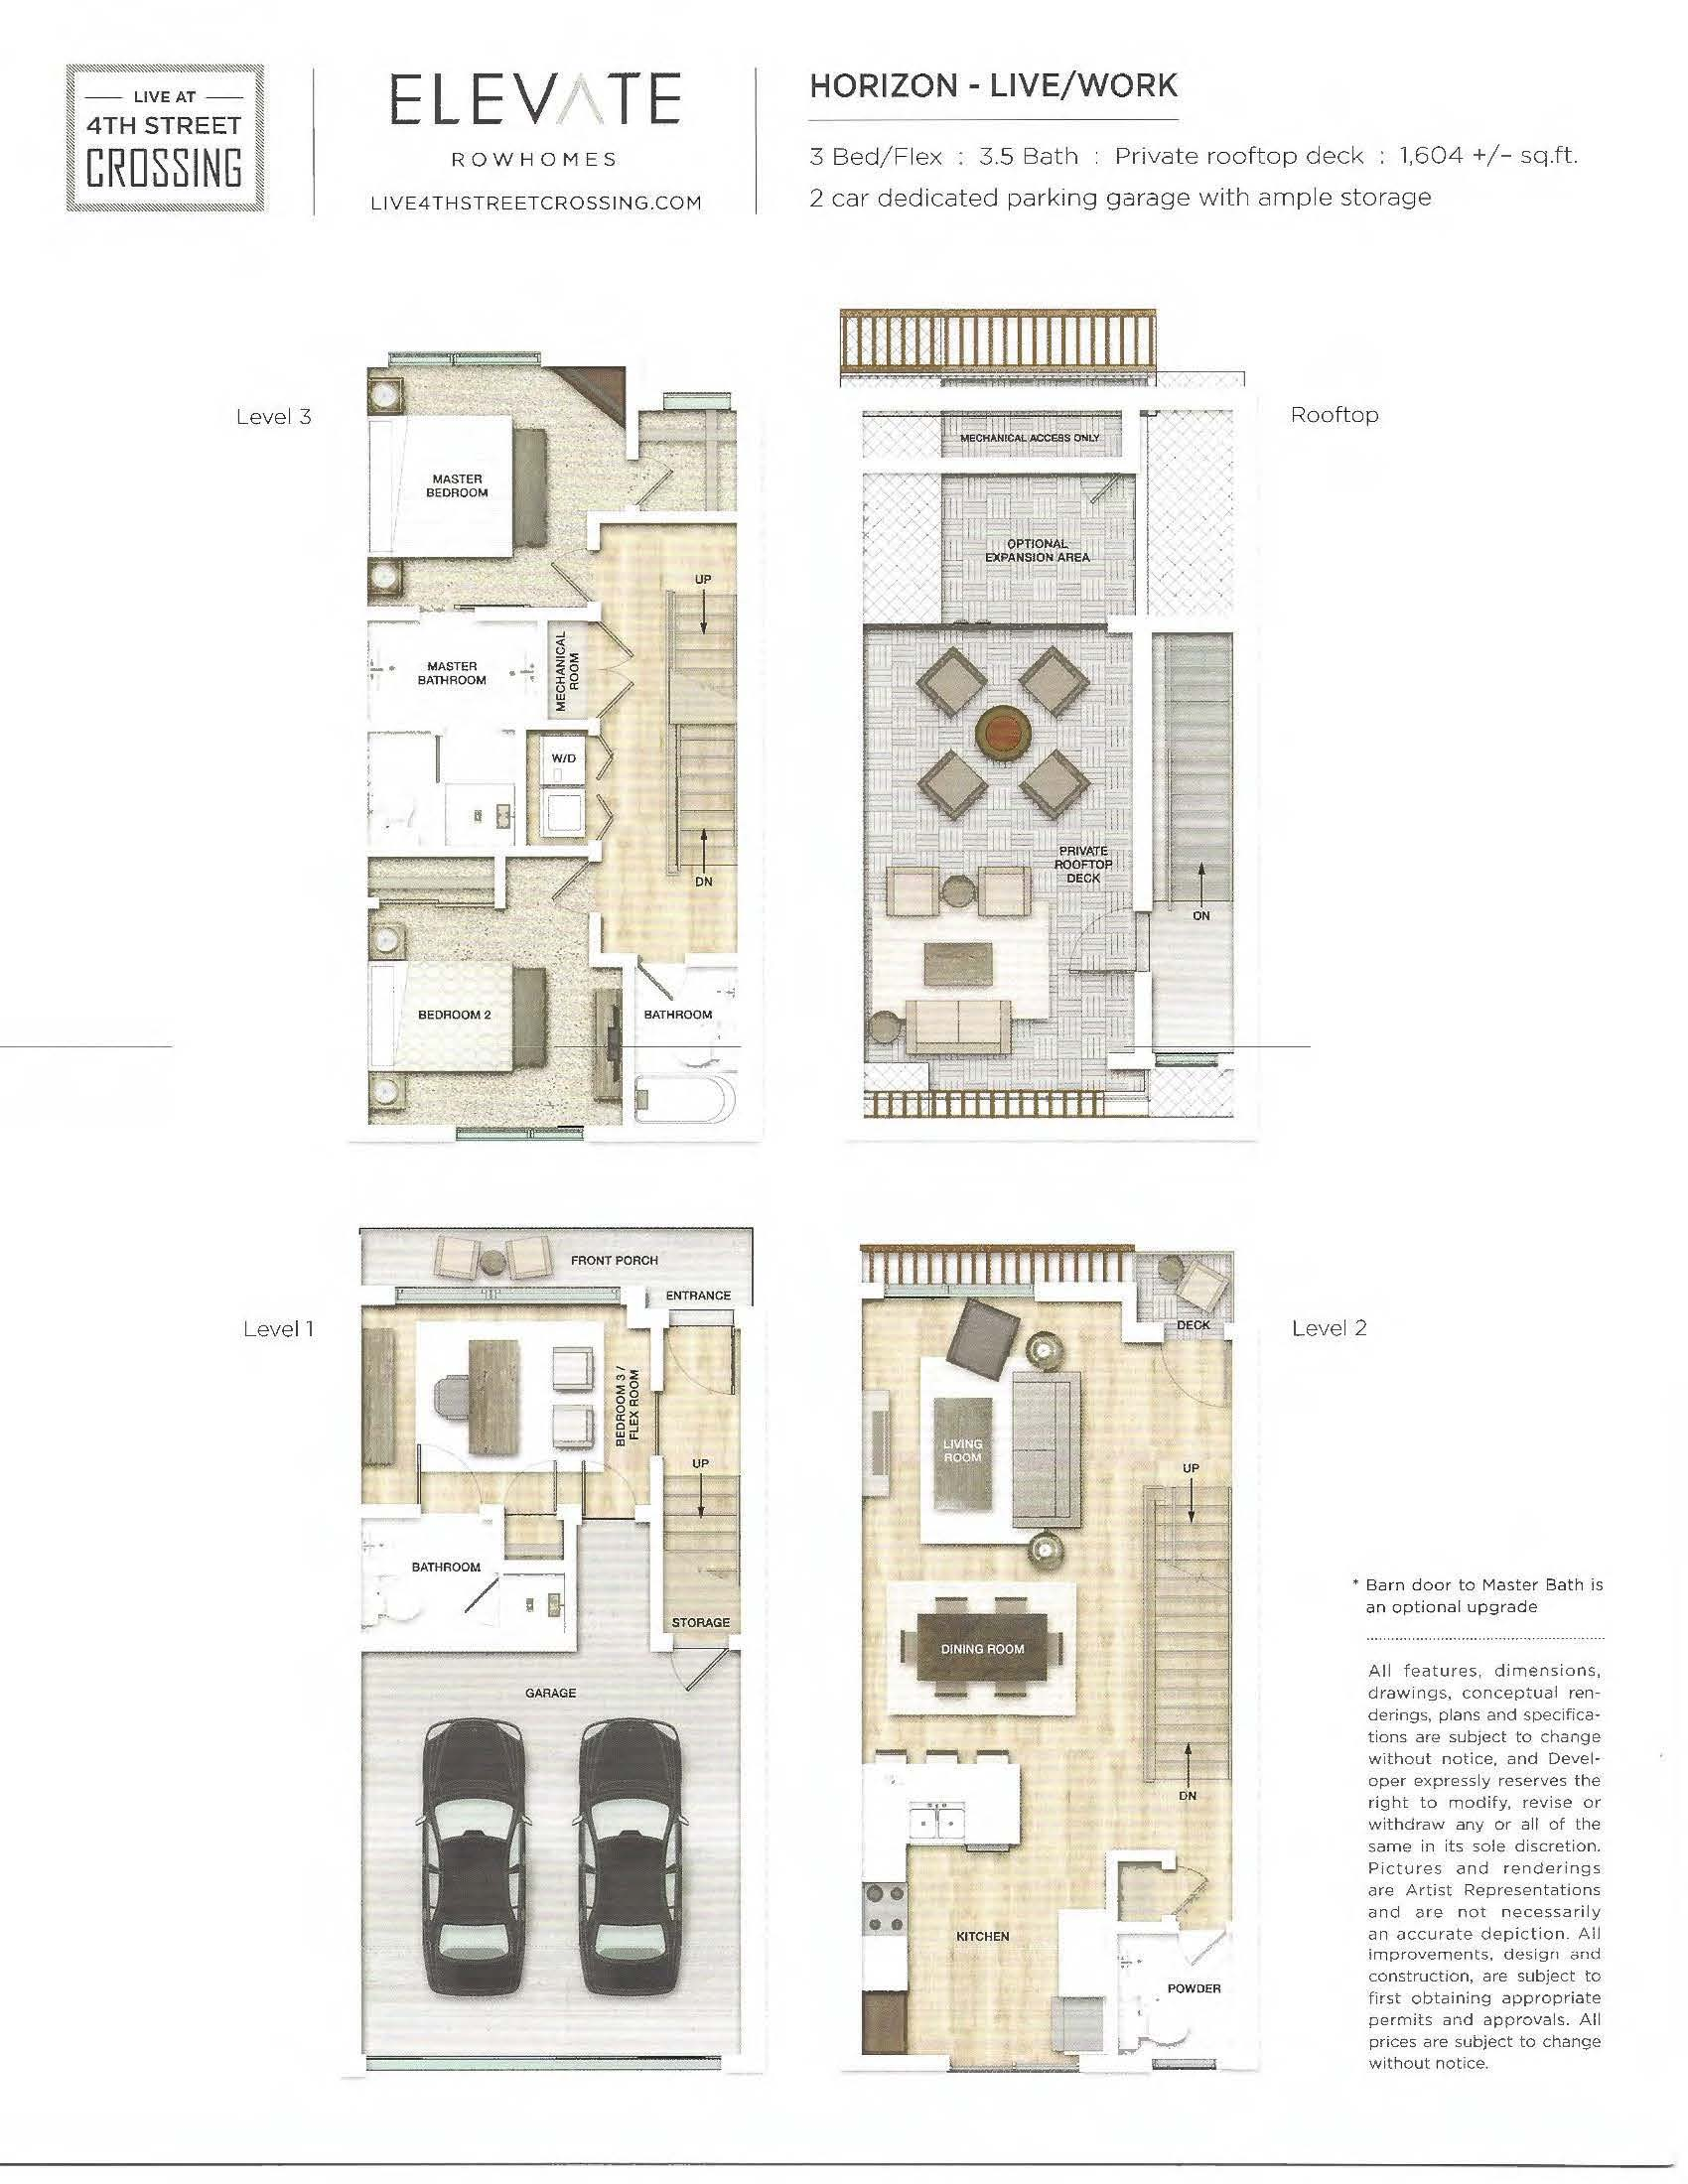 Fourth Street Crossing - Elevate Rowhomes - Horizon Floorplan